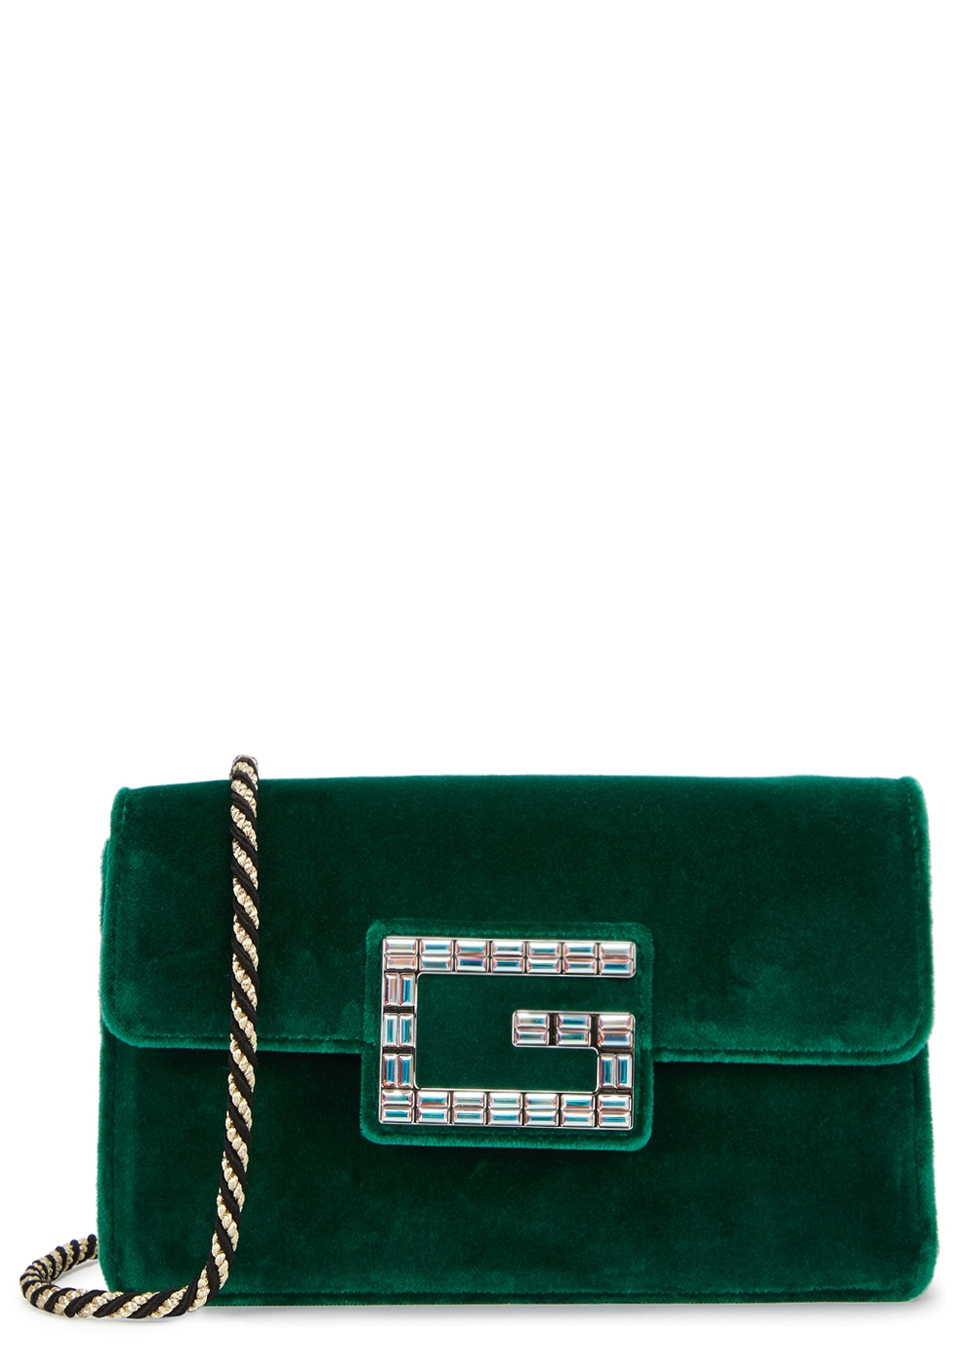 Broadway Crystal G Velvet Shoulder Bag in Green